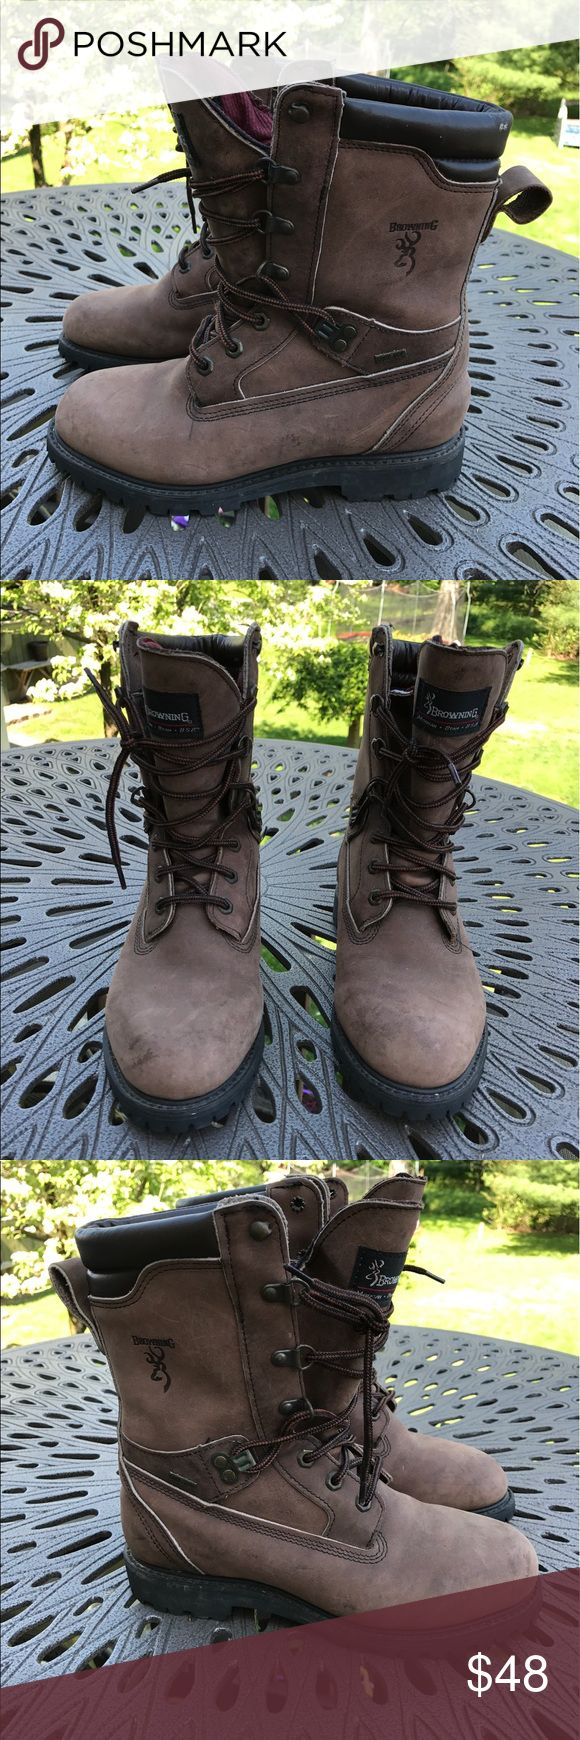 Women's Browning work hiking insulated boots sz. 8 Women's brown browning tall boots size 8  Boots are pre-owned, light wearing- soles are in excellent shape with lots of life left.  Boots are insulated! browning  Shoes Combat & Moto Boots